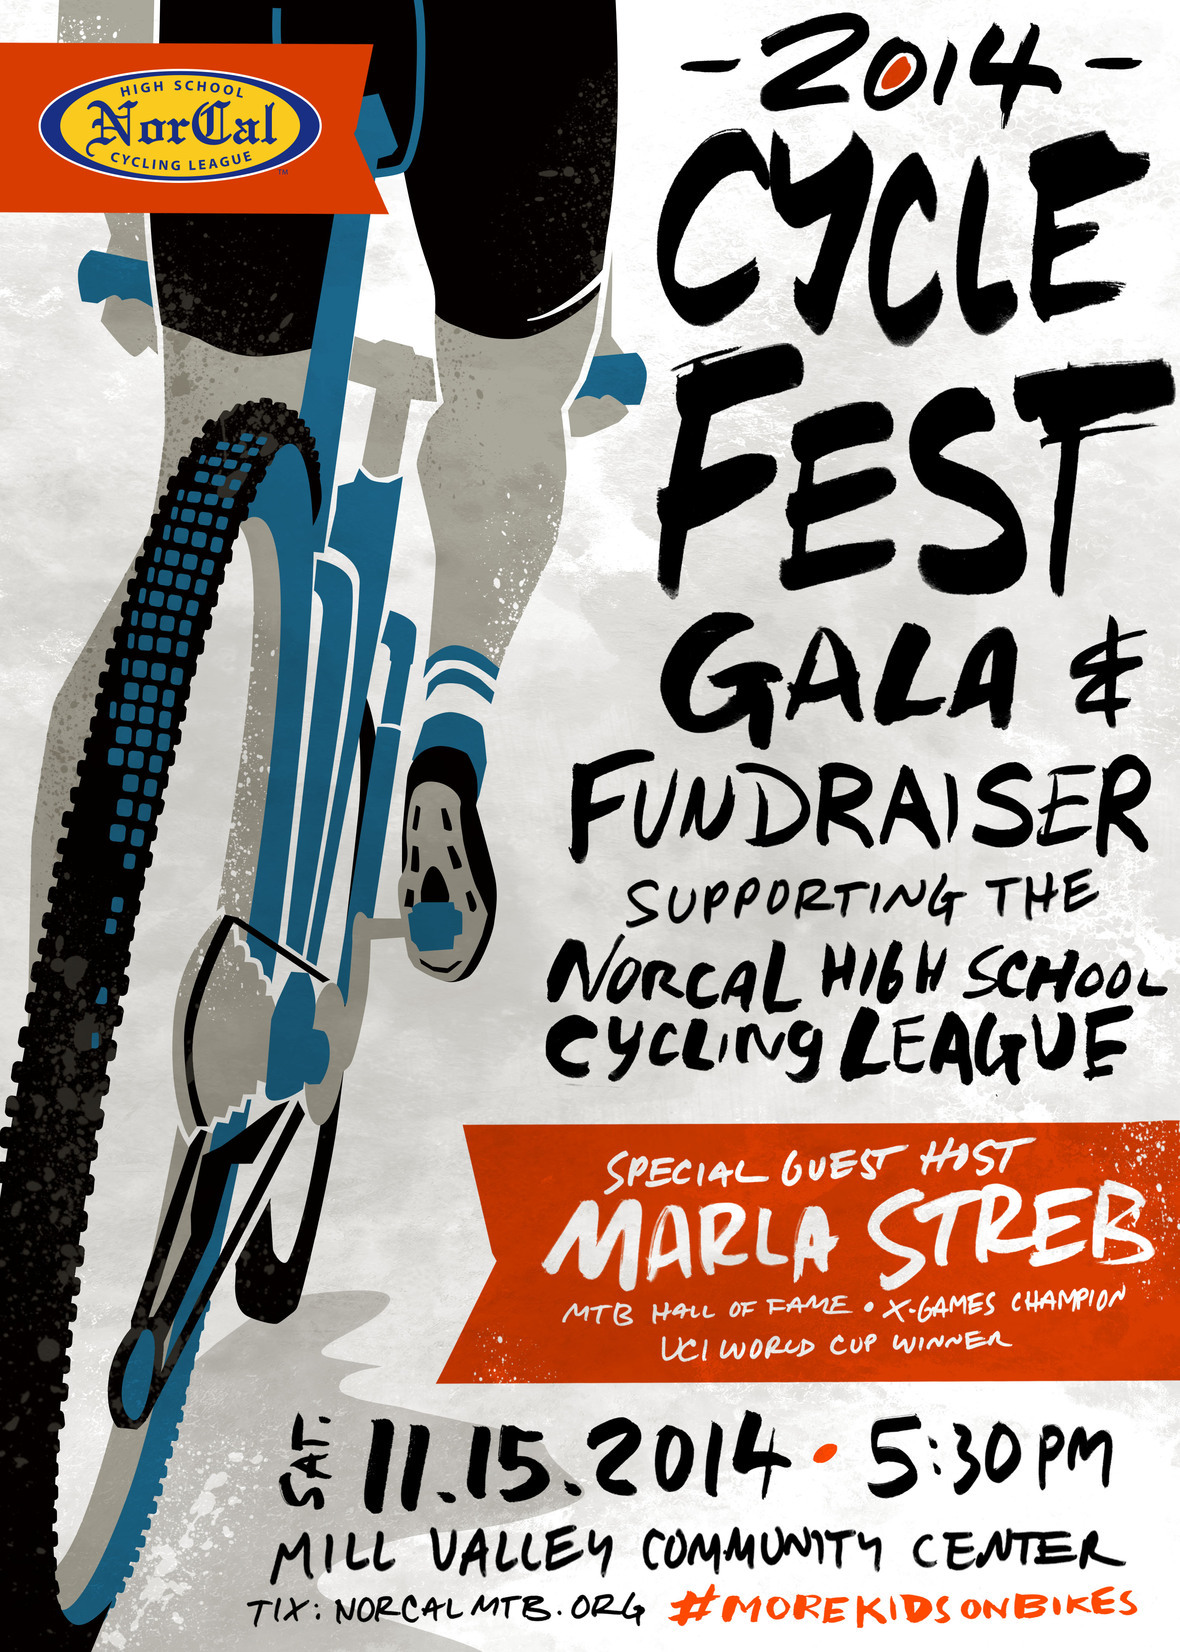 Press Release: Marla Streb to host NorCal League CycleFest on 11/15/14